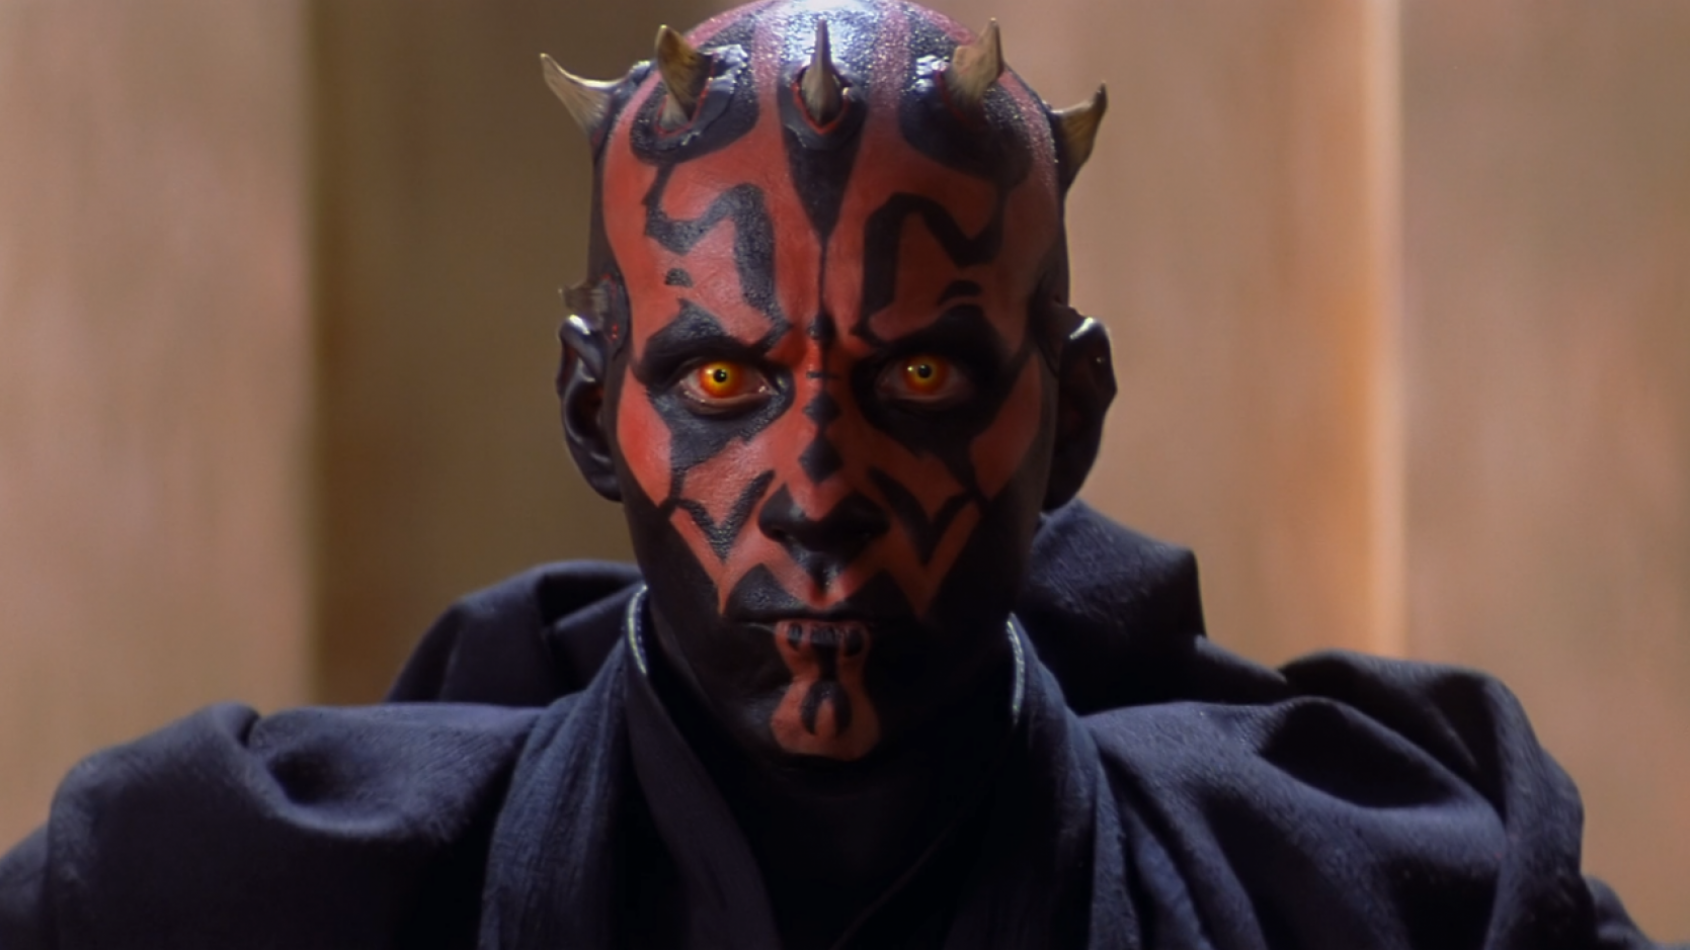 Ray Park sera présent à la Star Wars Celebration Europe